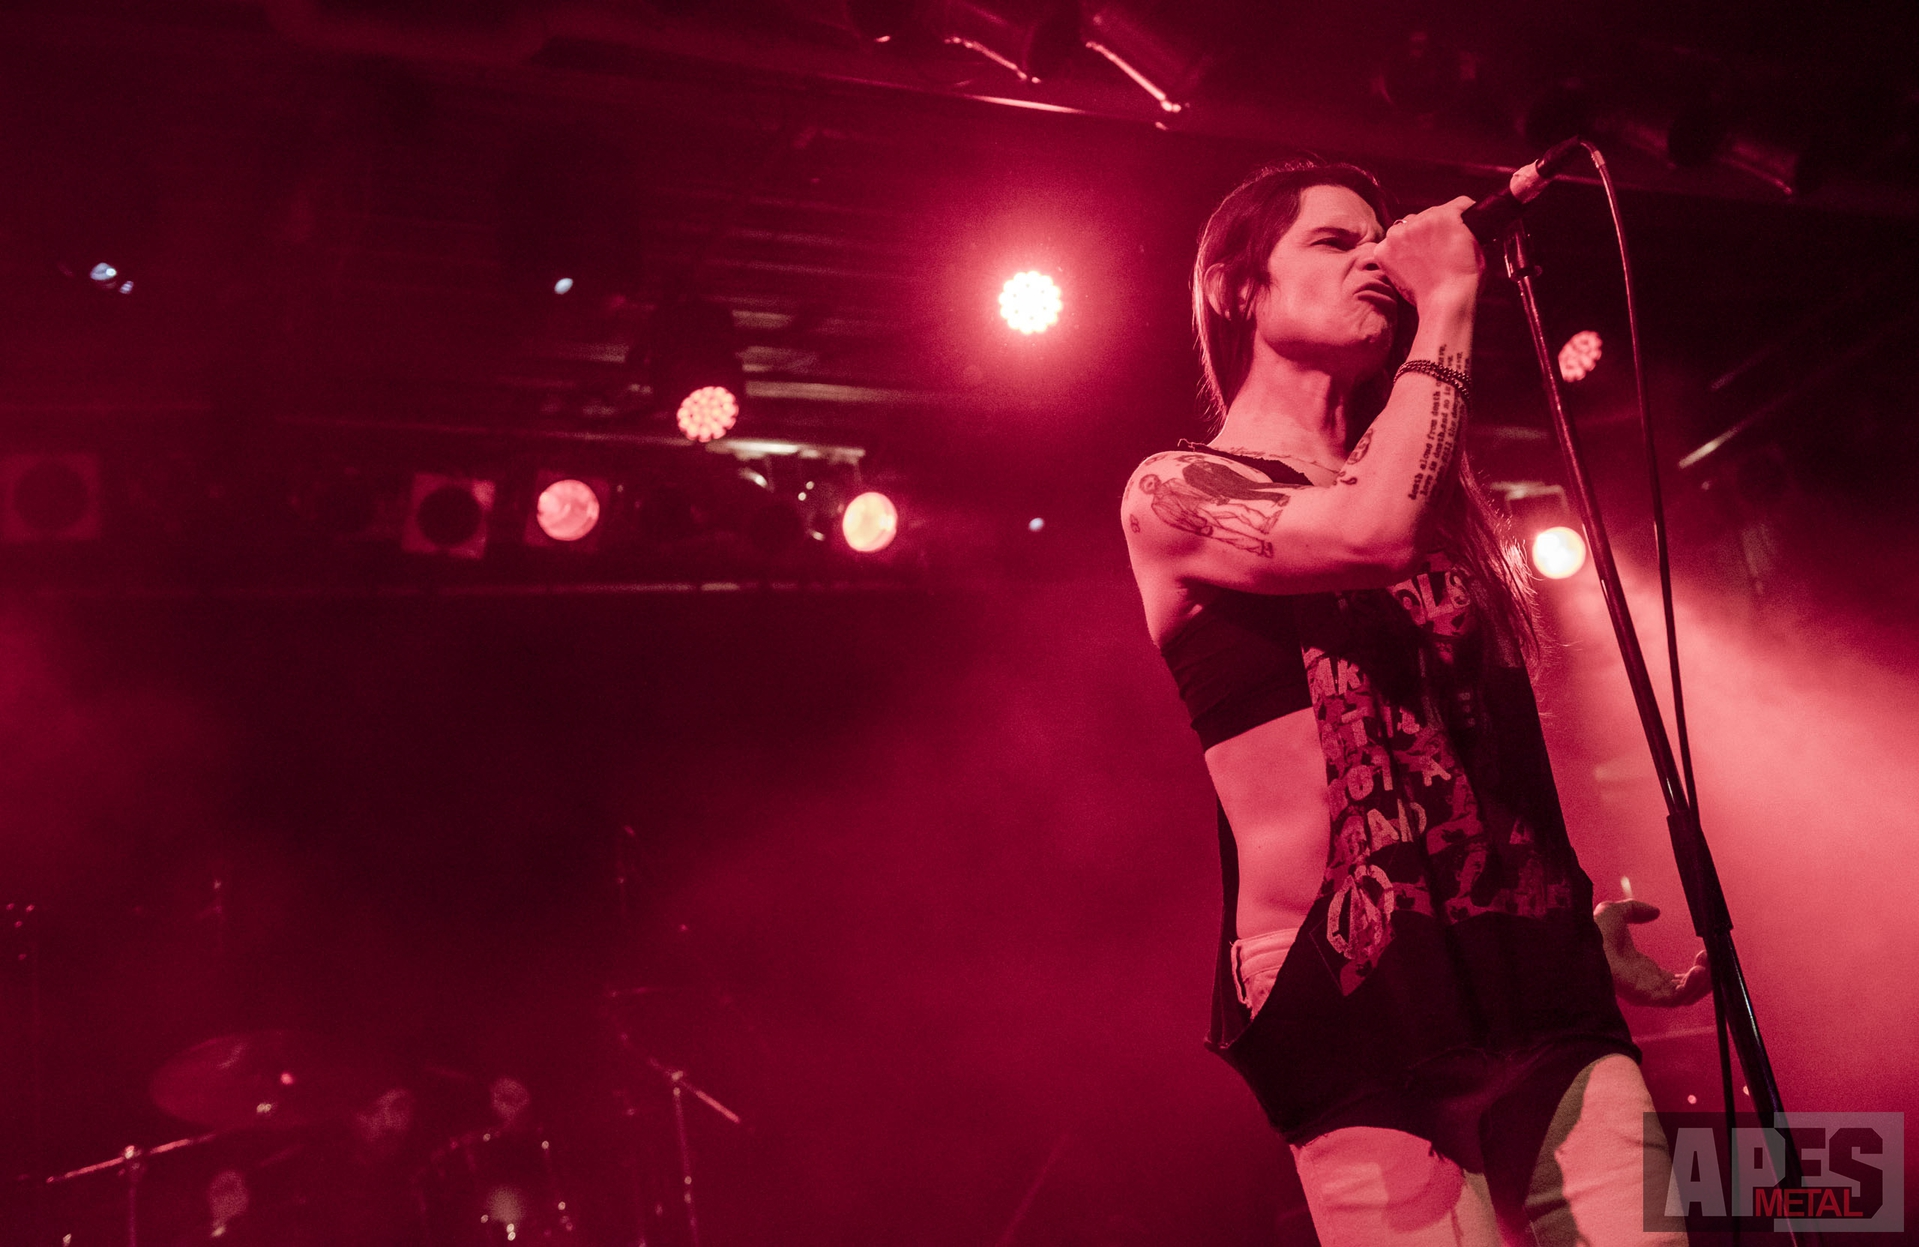 Nice Images Collection: Life Of Agony Desktop Wallpapers